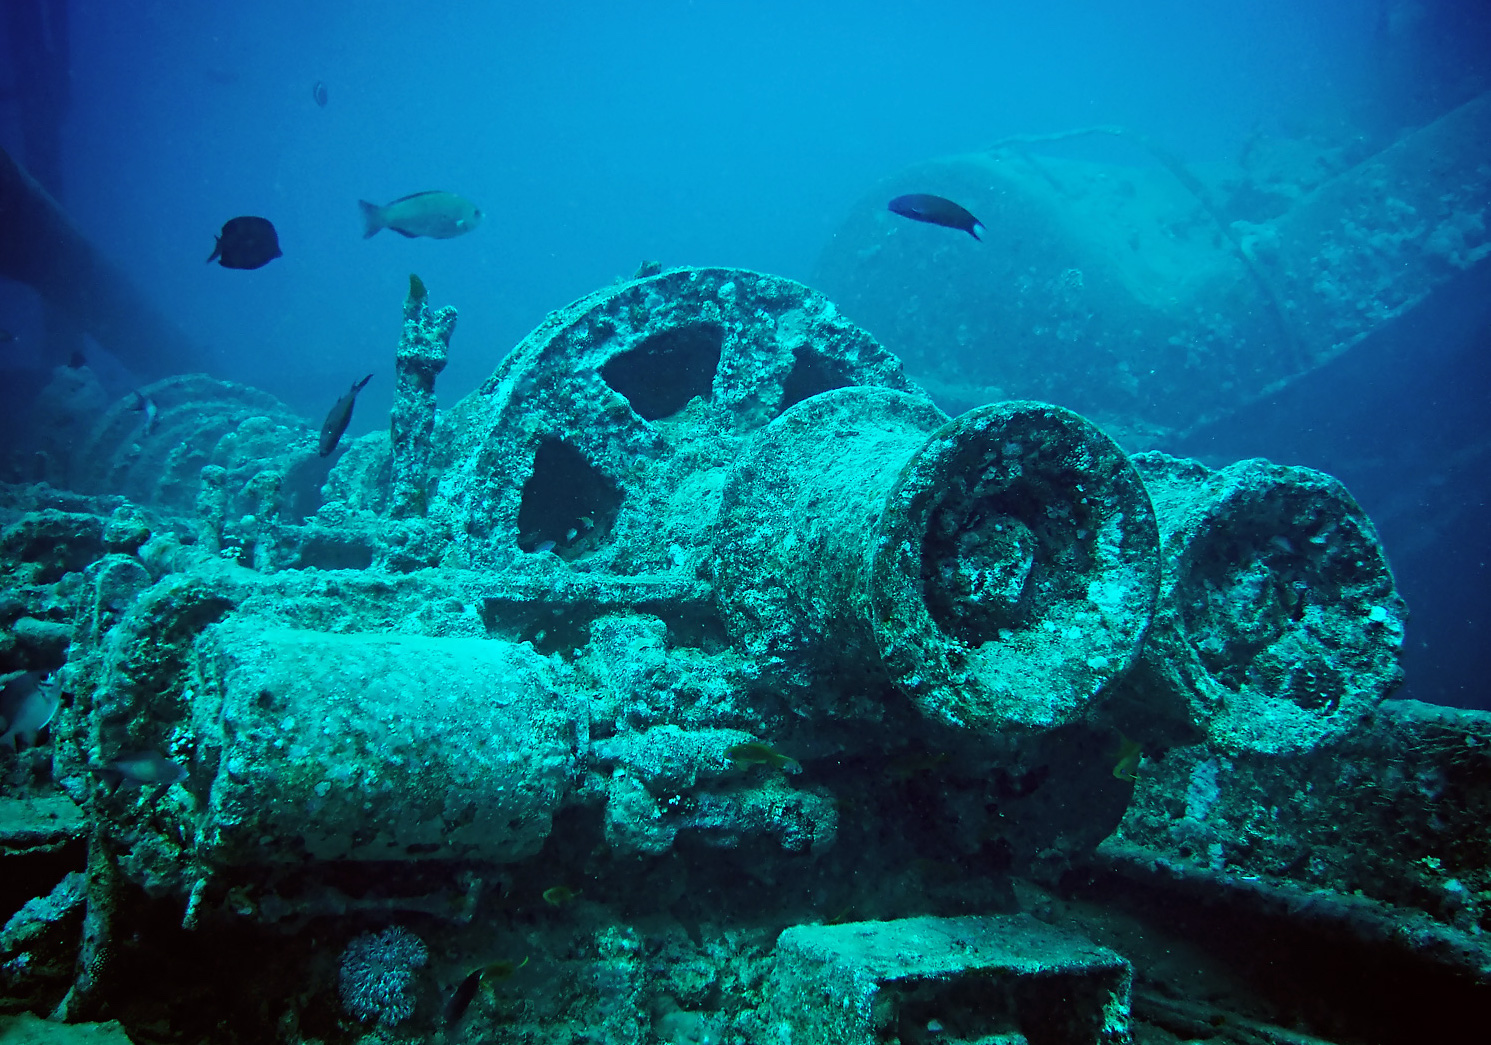 Thistlegorm_train_parts_minus_red_edit.jpg